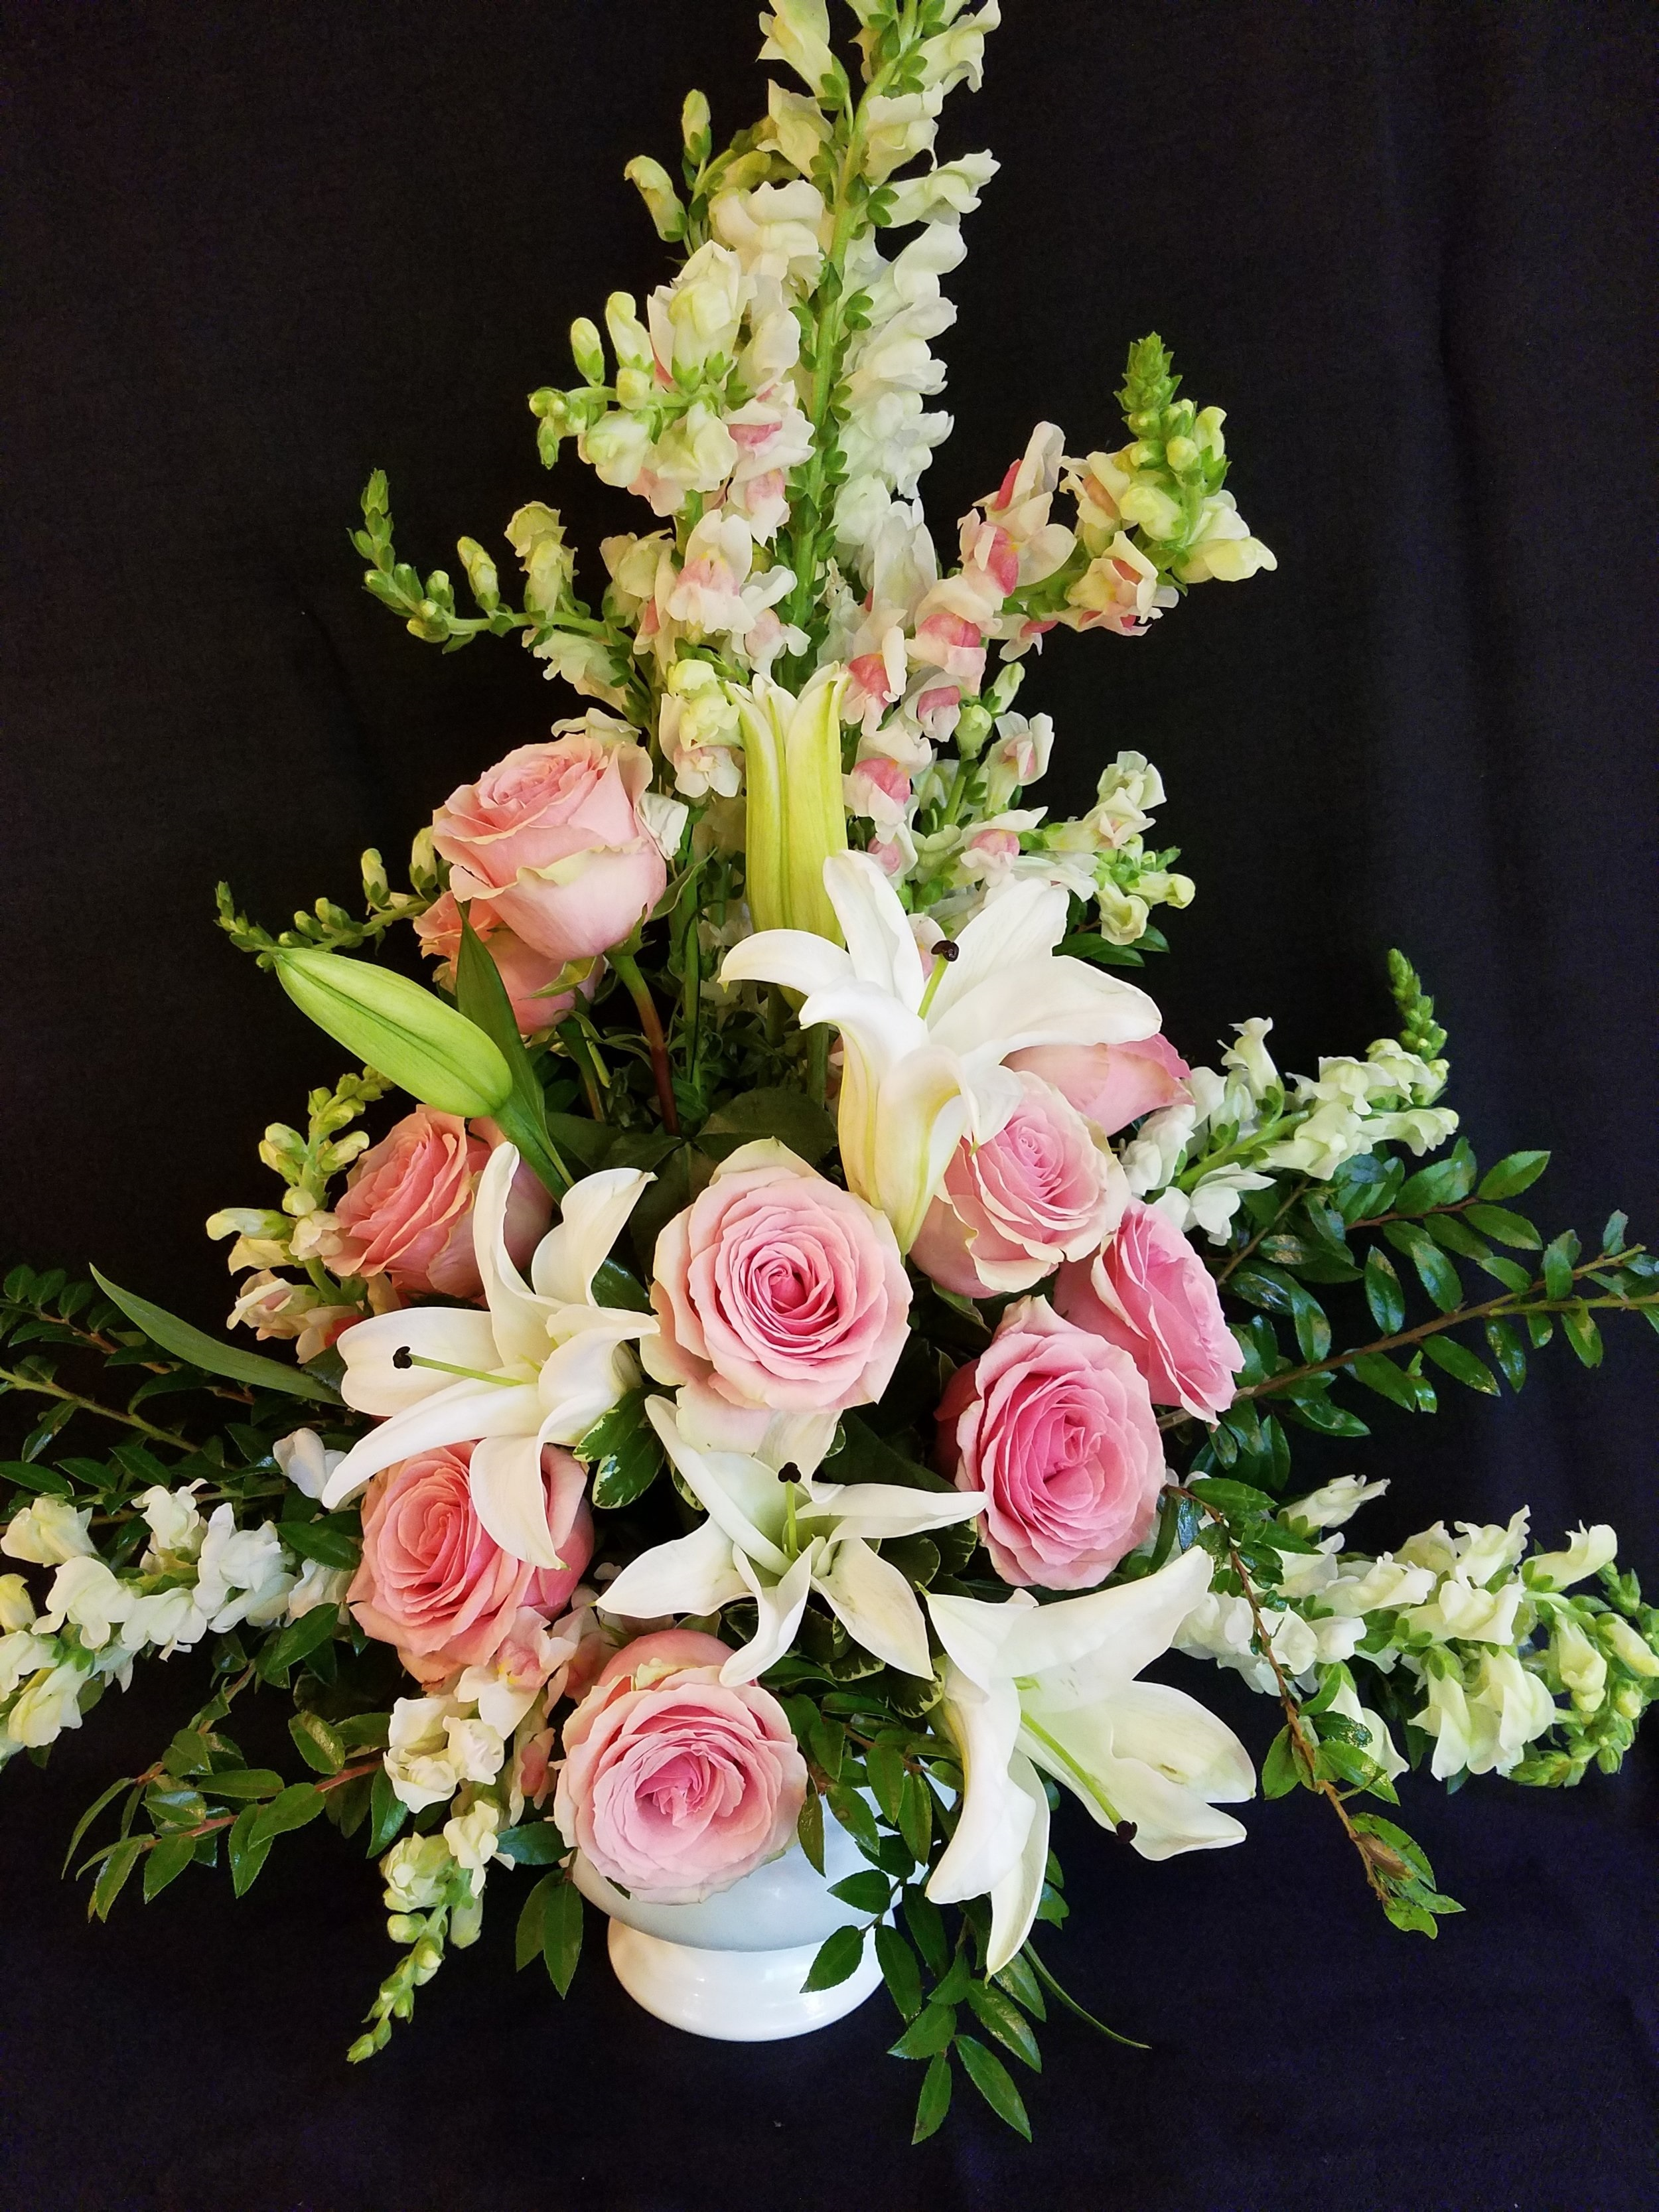 Flowers for sympathy, tribute, funerals, memorial services. Pink roses with white lilies.